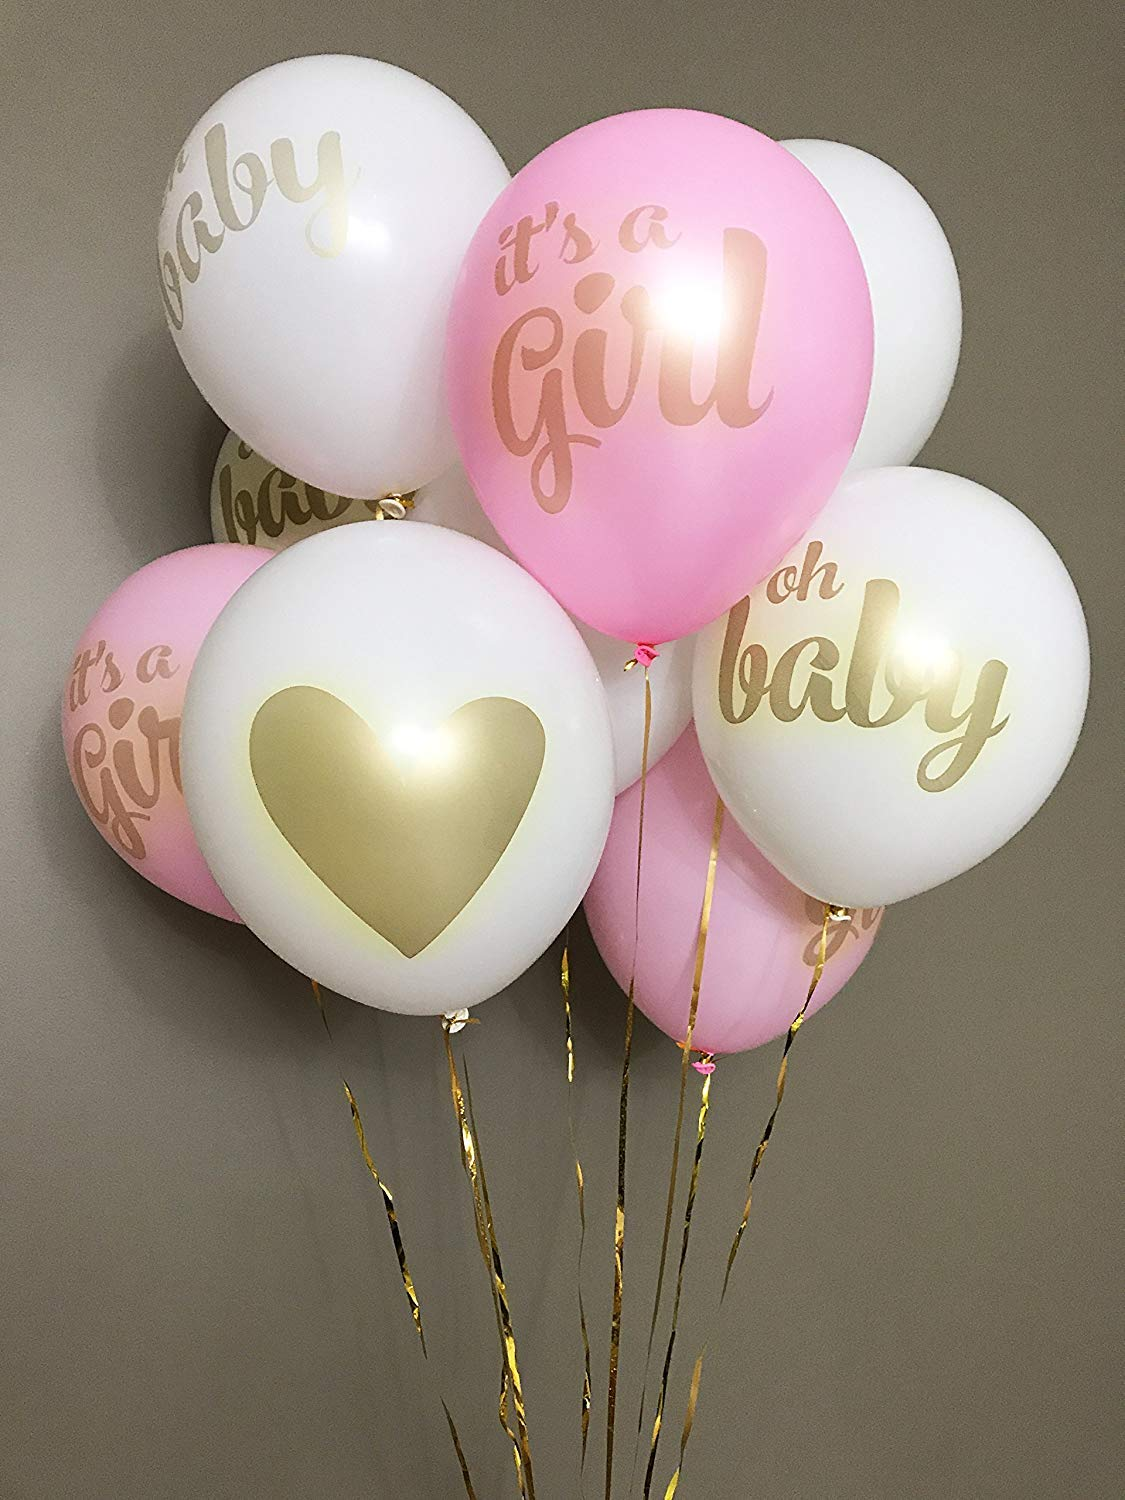 Baby Shower Decorations for Girl - 80PC Bundle Includes - Garland Bunting Banner Bonus+30PC Photo Booth Props Bonus+8PC Balloons Plus+E-Book Prediction Card and Decorations Set with in Ziplock Bag by Golden Babyy (Image #9)